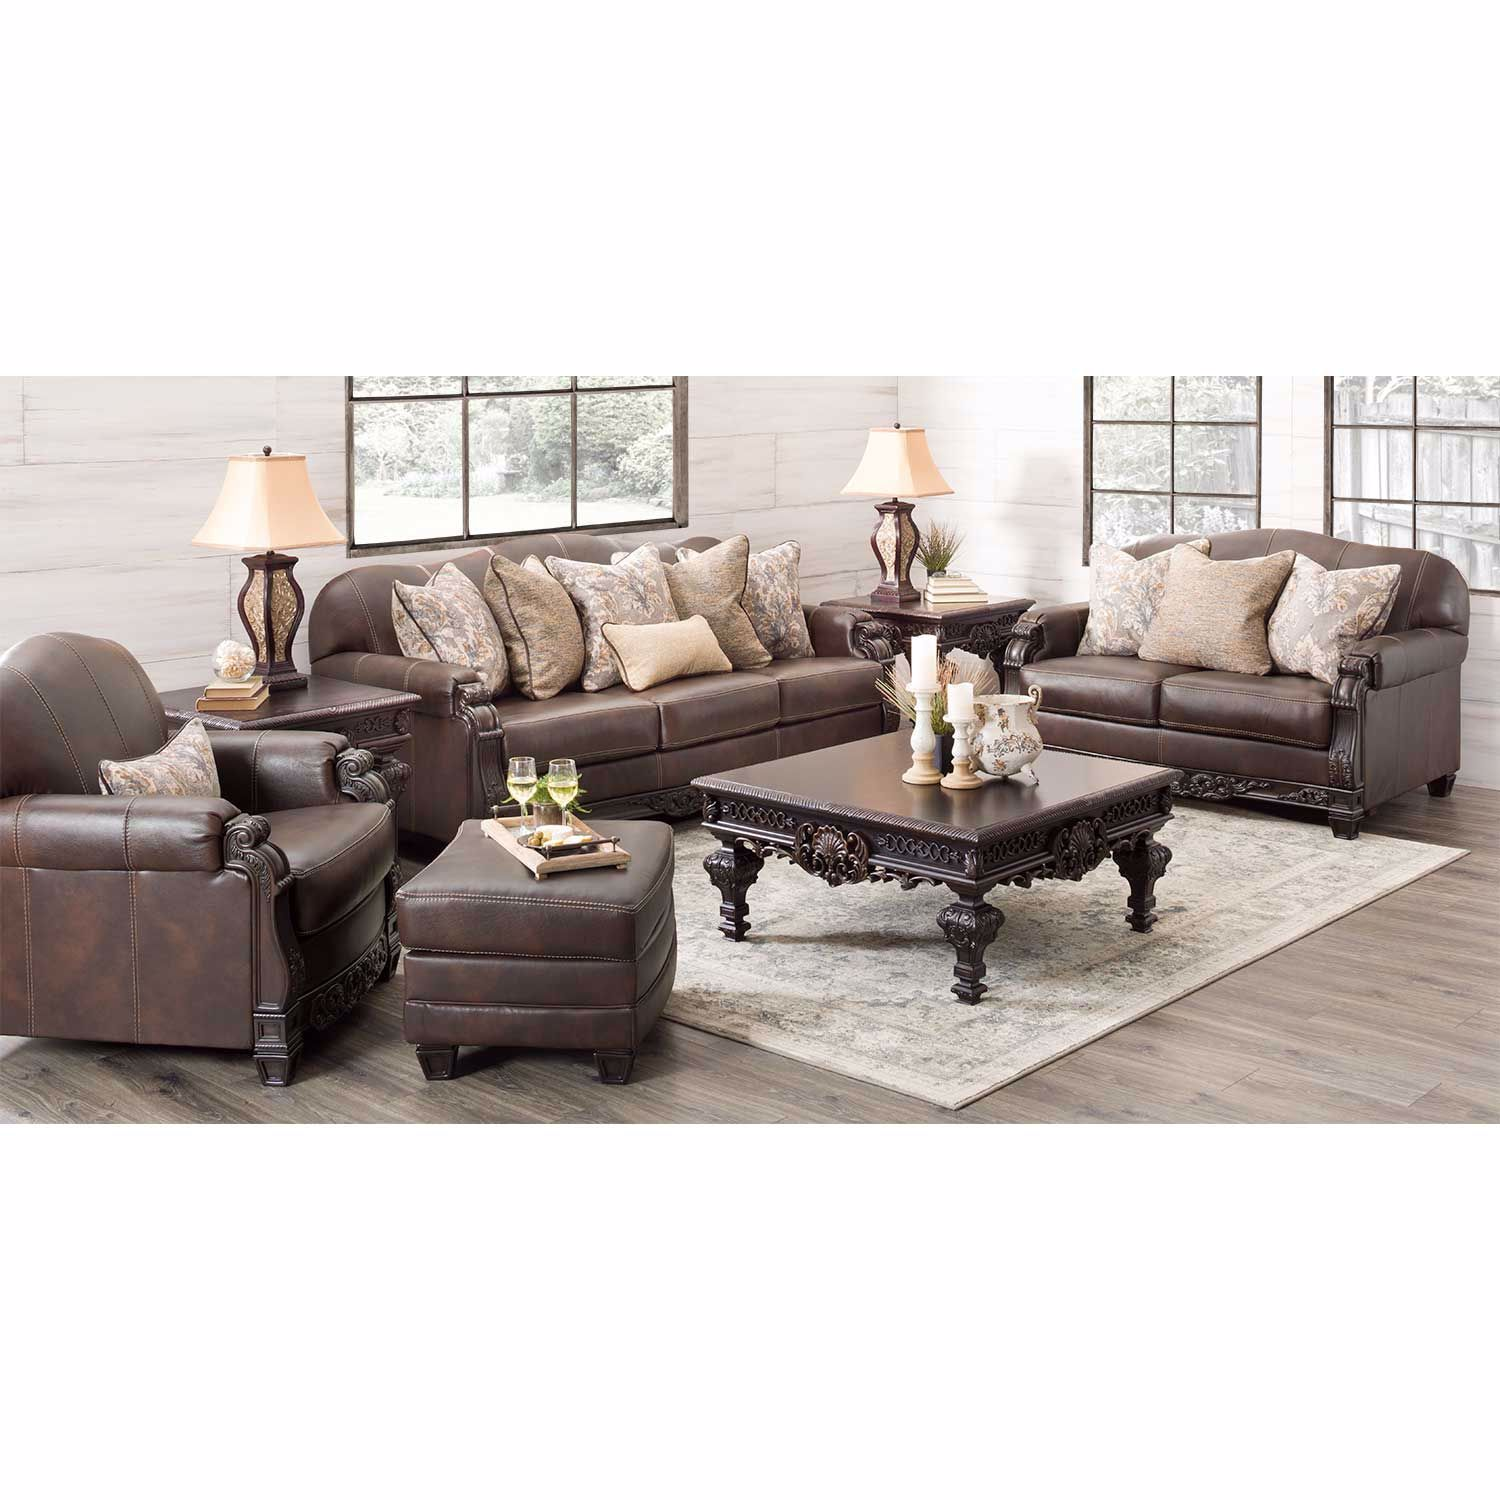 Picture of Embrook Chocolate Leather Sofa